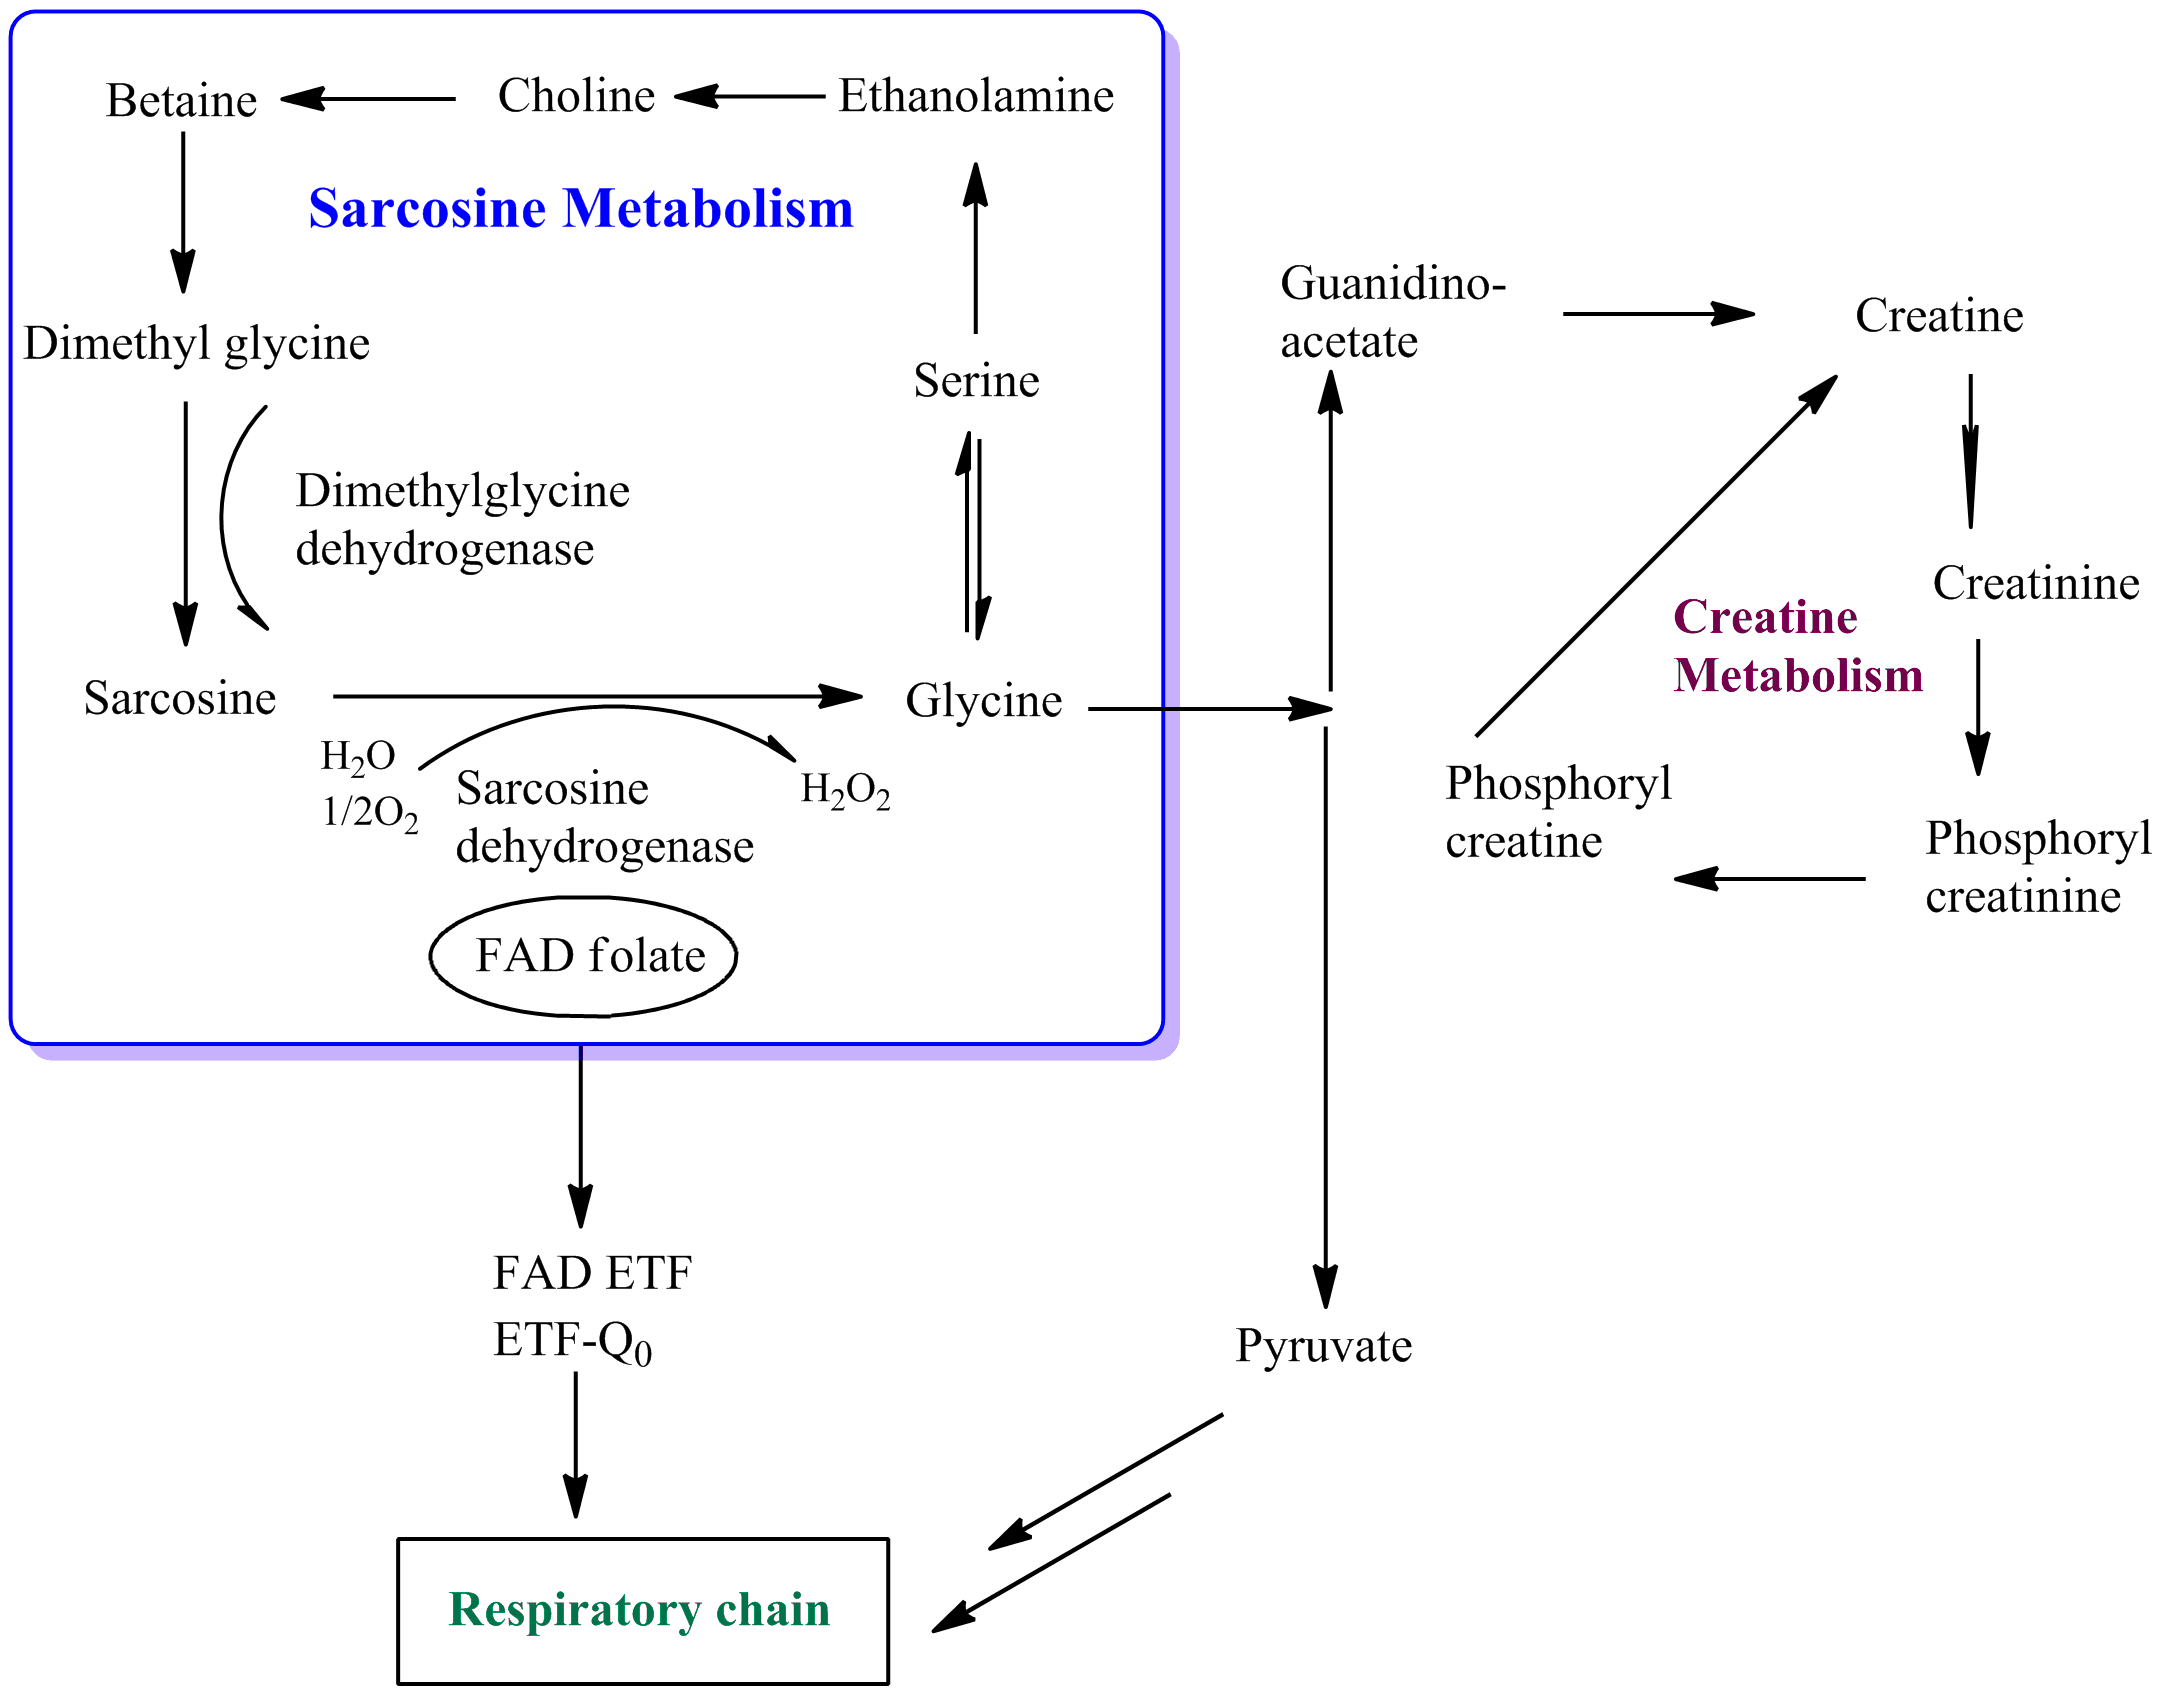 cellular respiration anabolic process